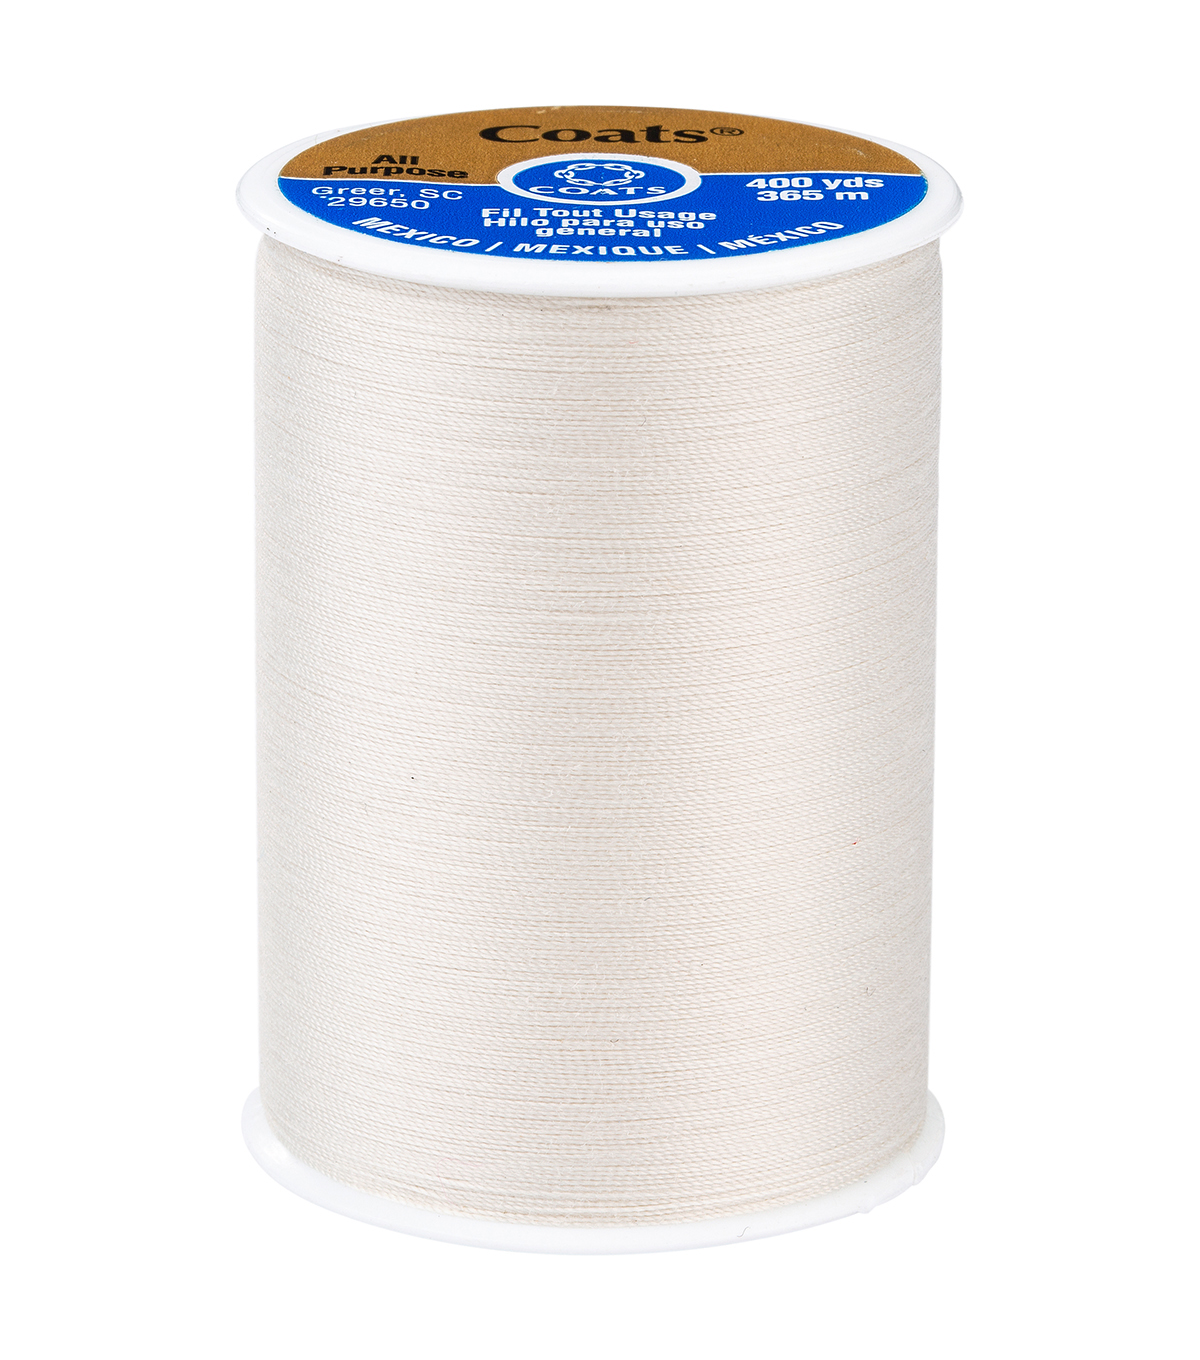 Coats & Clark Dual Duty Thread-400yds, Natural